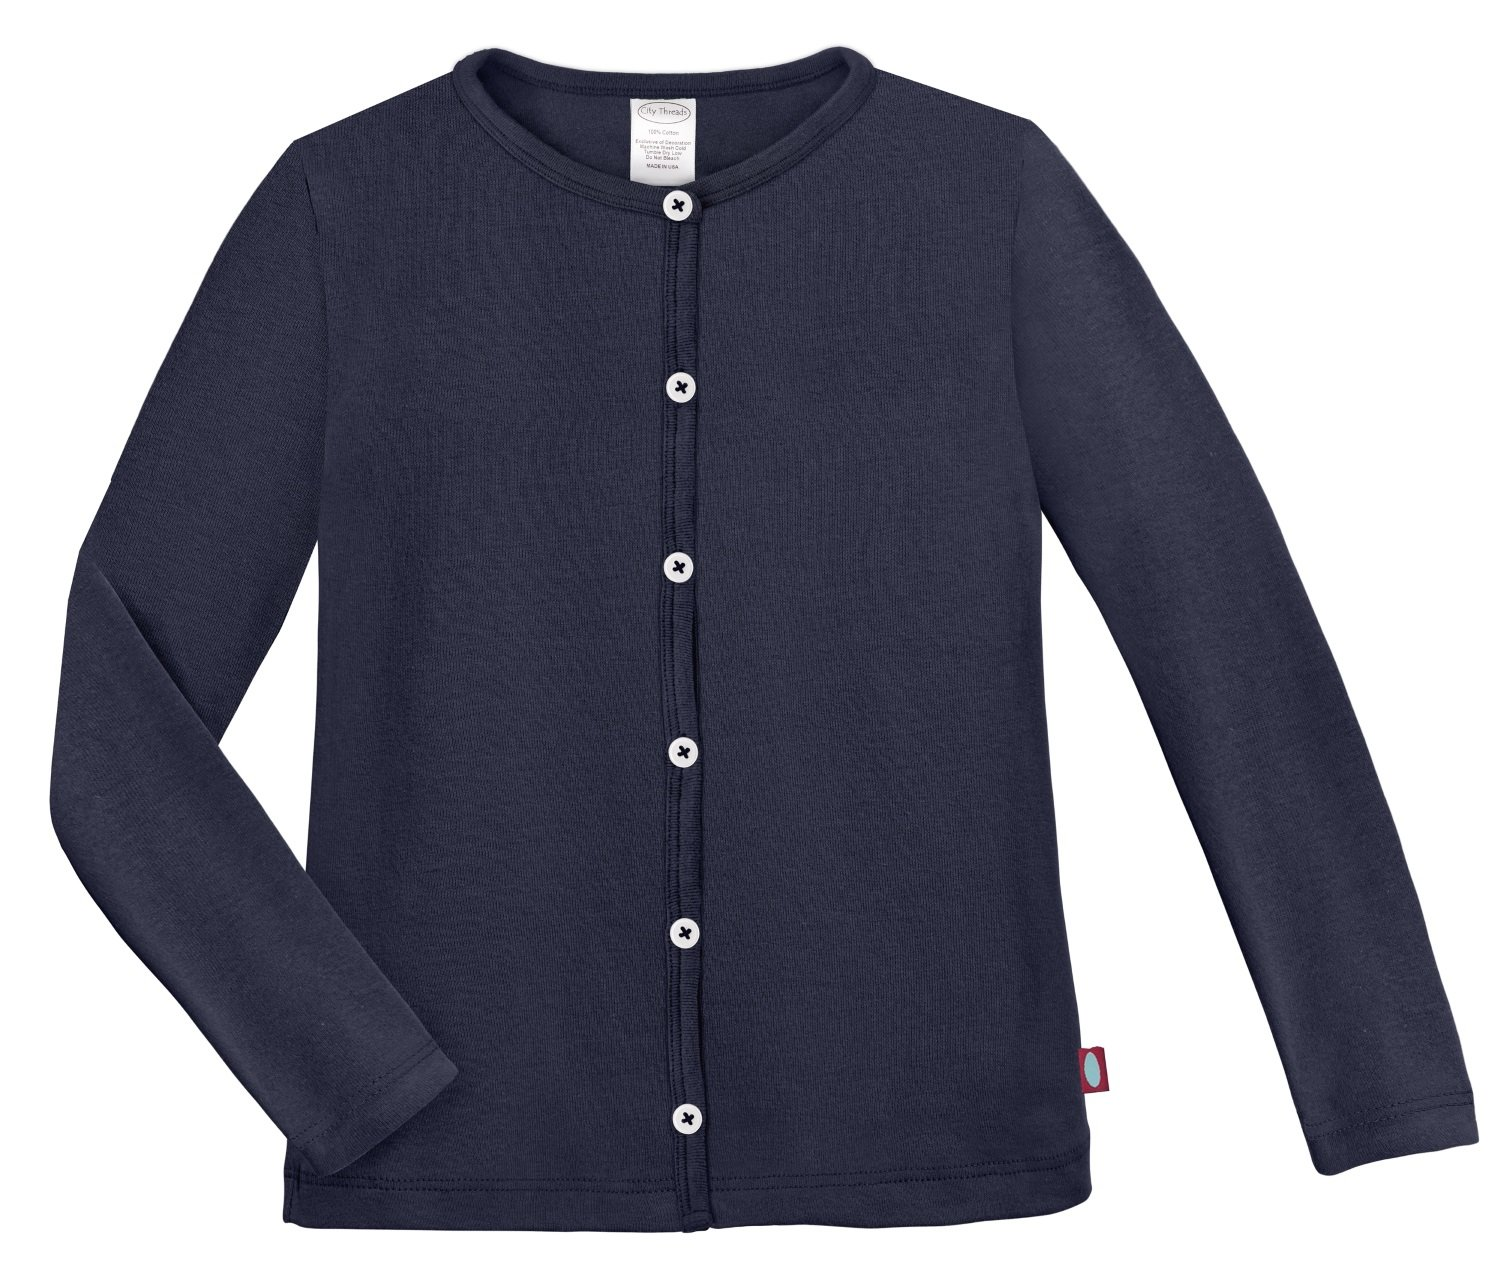 City Threads Girls Cardigan Top Button Down Sweater Layering School Play For Sensitive Skin SPD Sensory Friendly, Navy, 4T